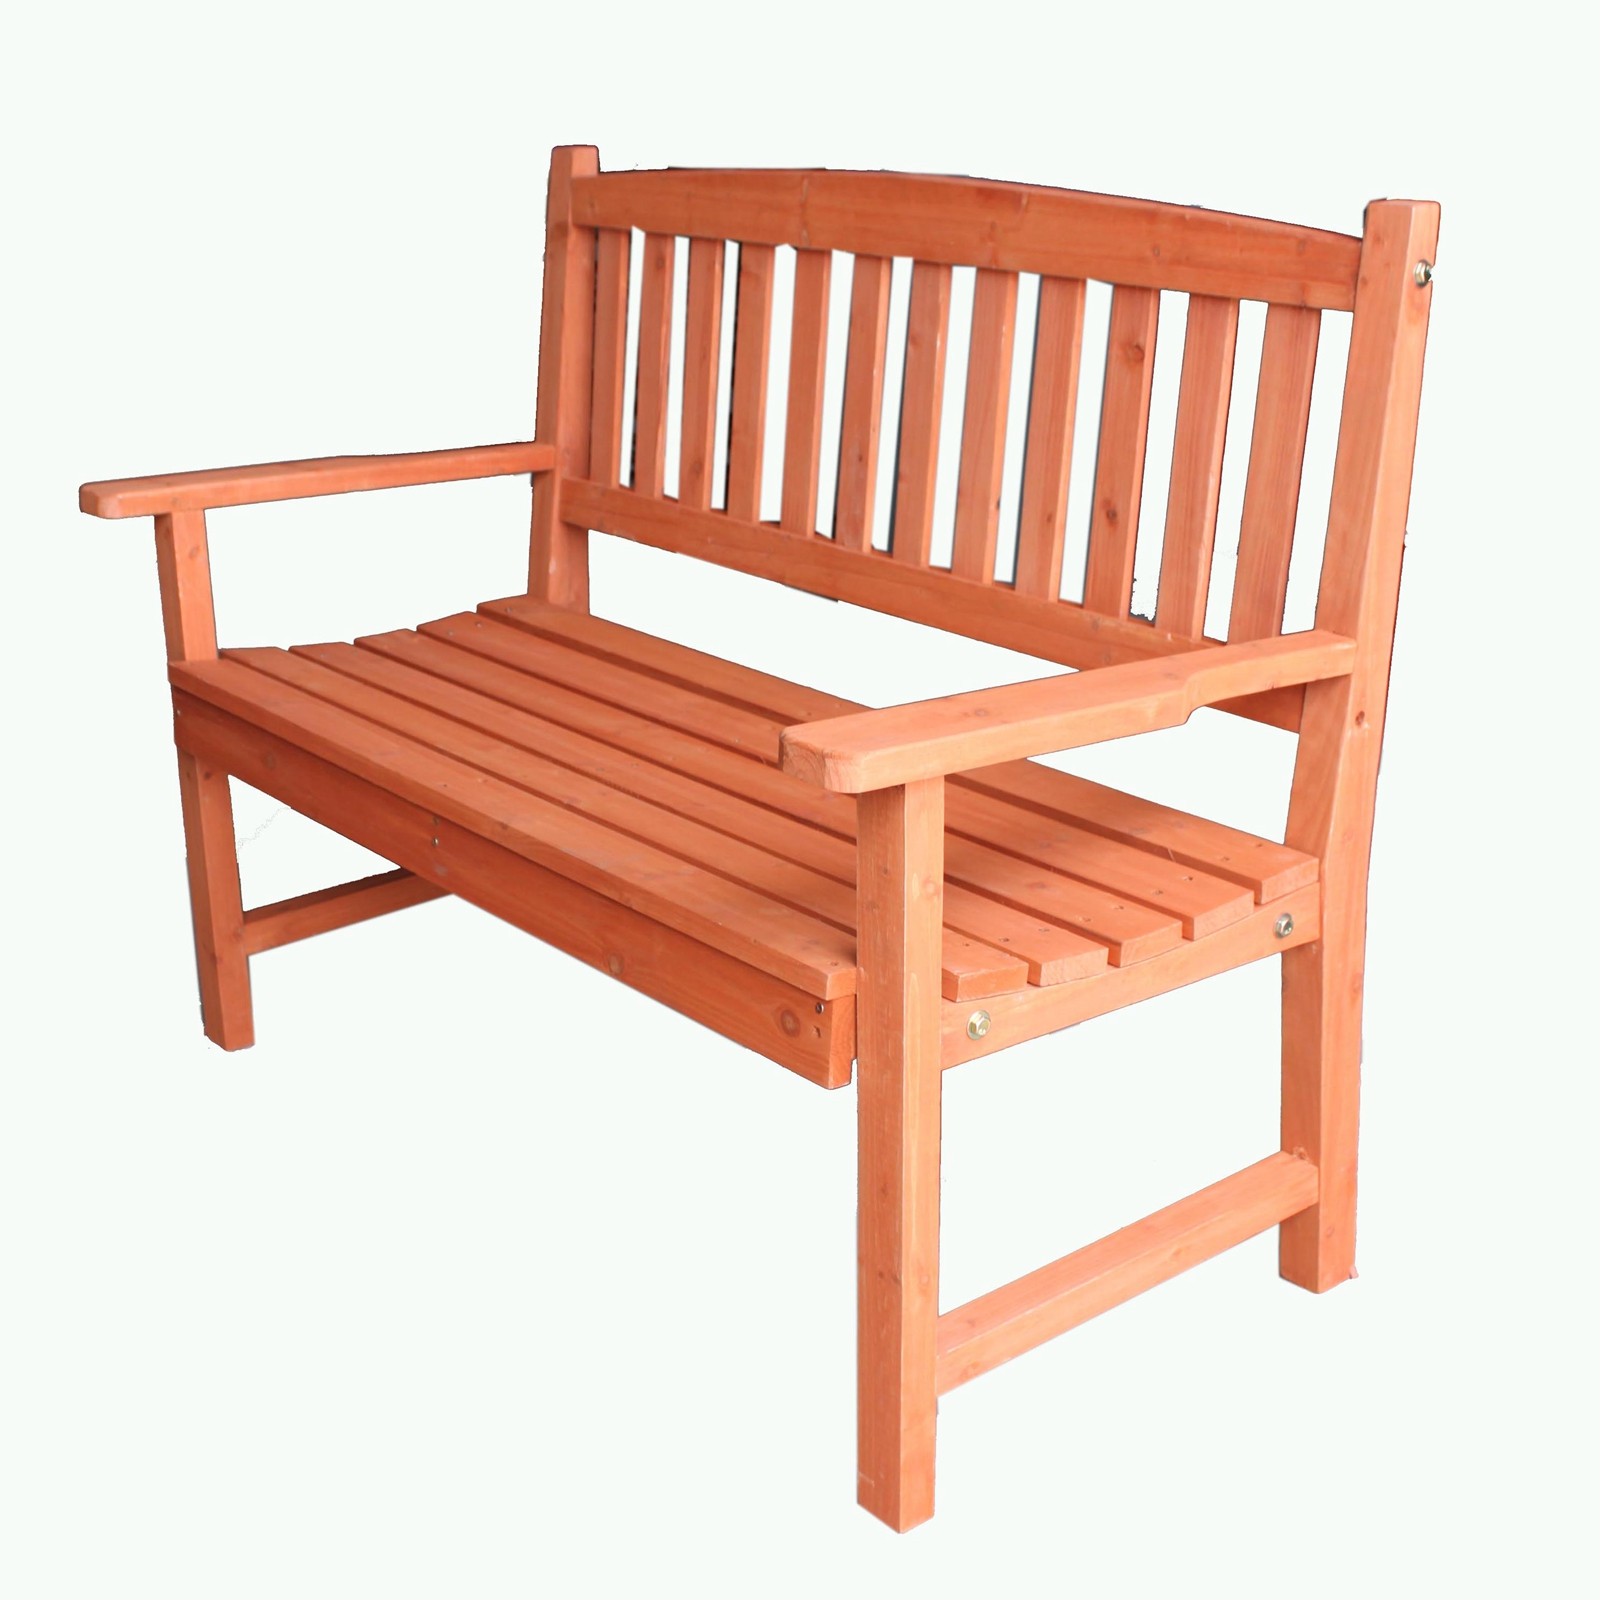 Hokku Designs Revionna Two Seat Bench With Storage: FoxHunter Wooden Garden Bench 2 Seat Seater Hardwood